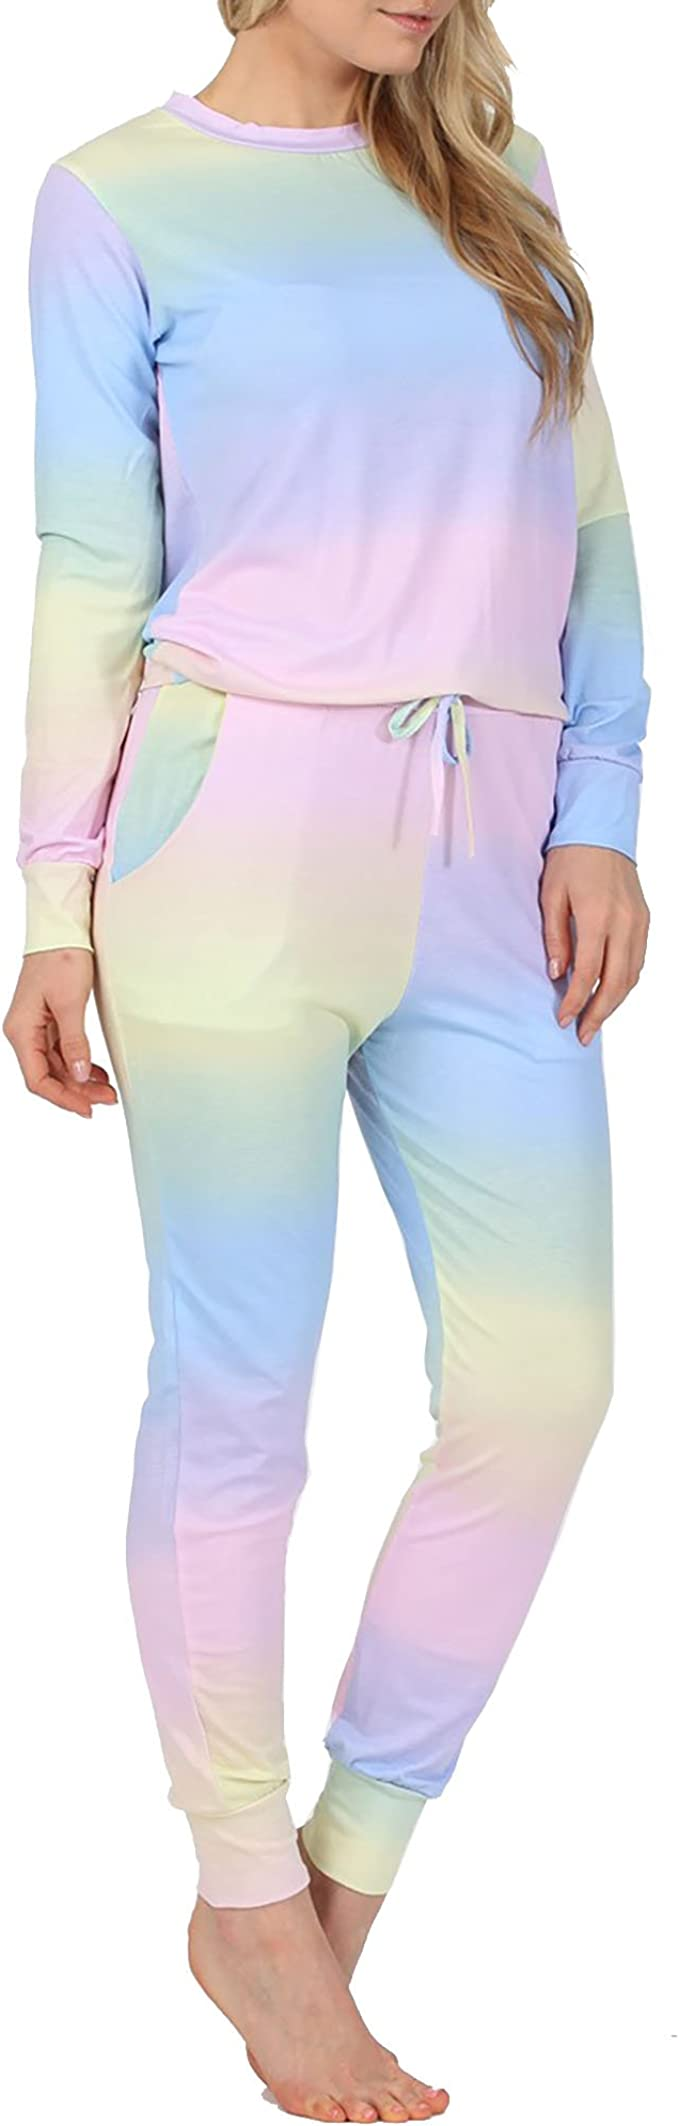 Street Chic Outlet - Chándal - para mujer multicolor Arco Iris 44 ...